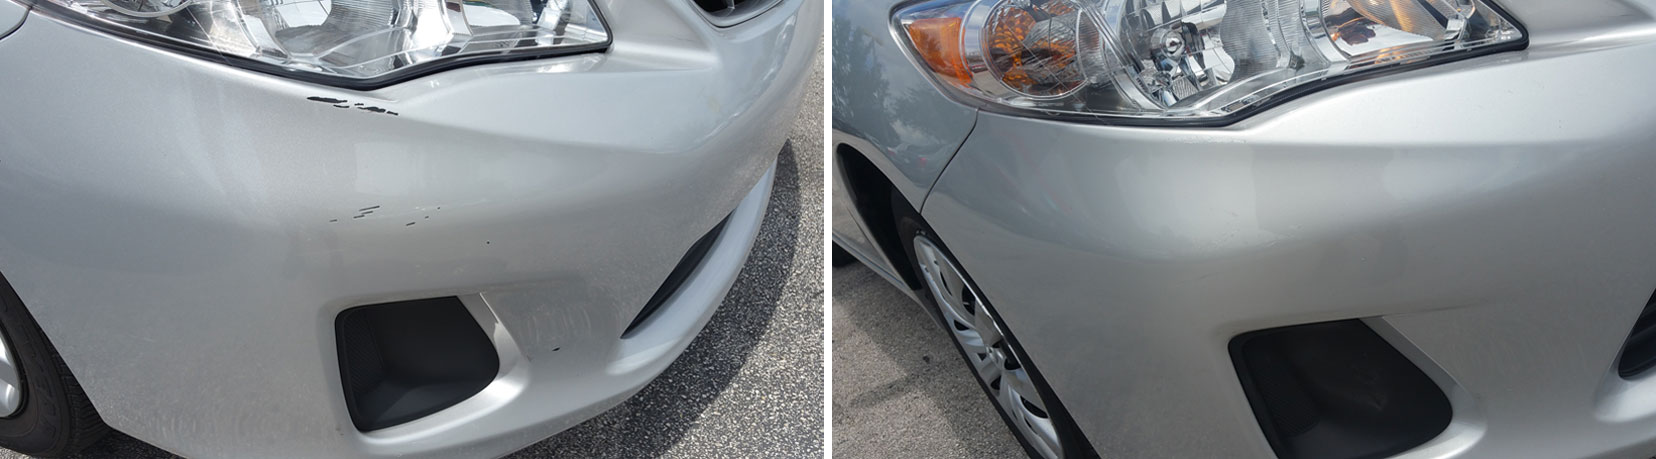 Toyota-Paint-Scratches and chips-Repair-Palm-Beach-FL